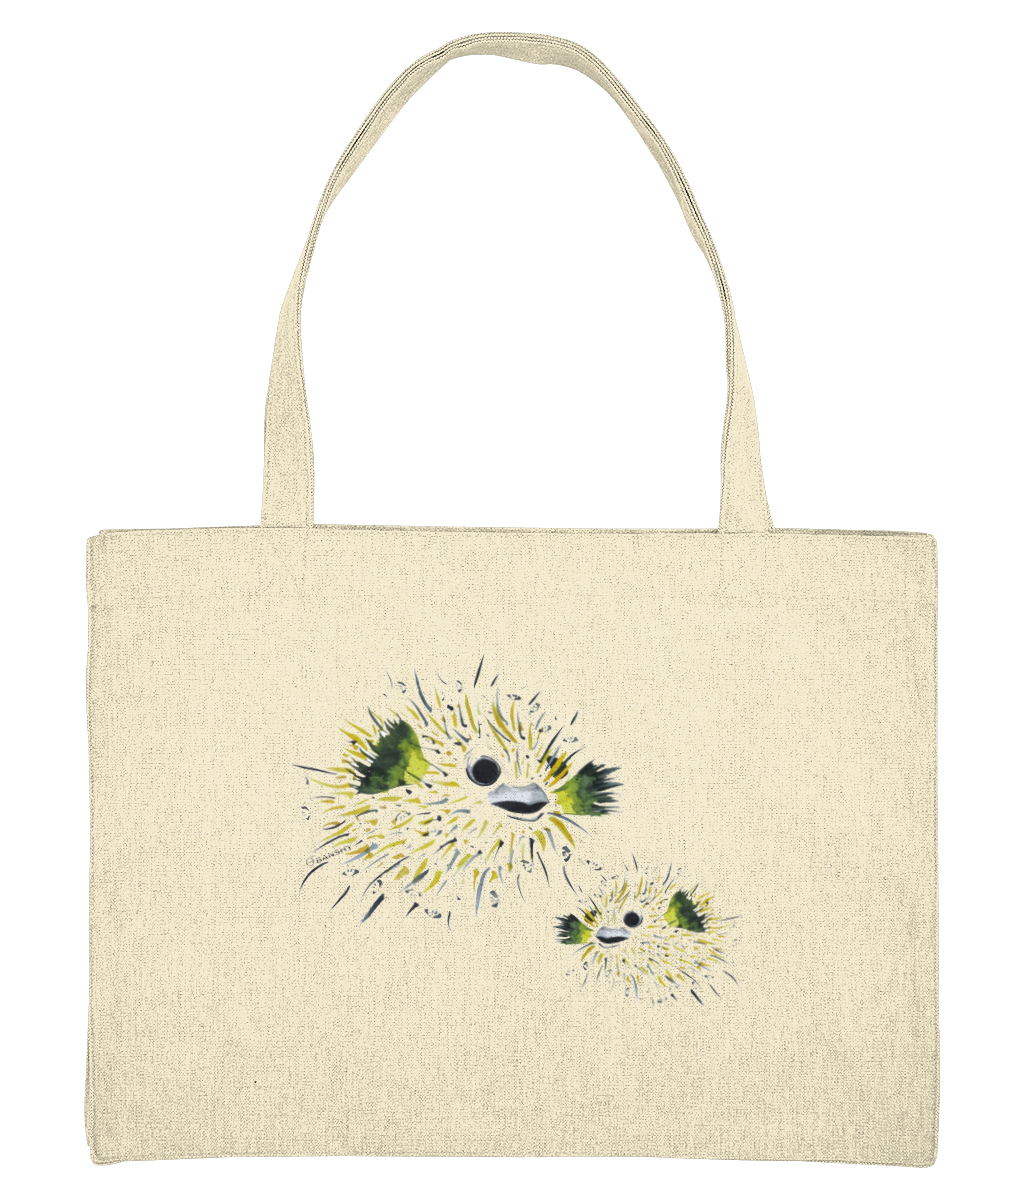 pufferfish - Clothing from the sea - tote bag large- 100% cotton - Banshy